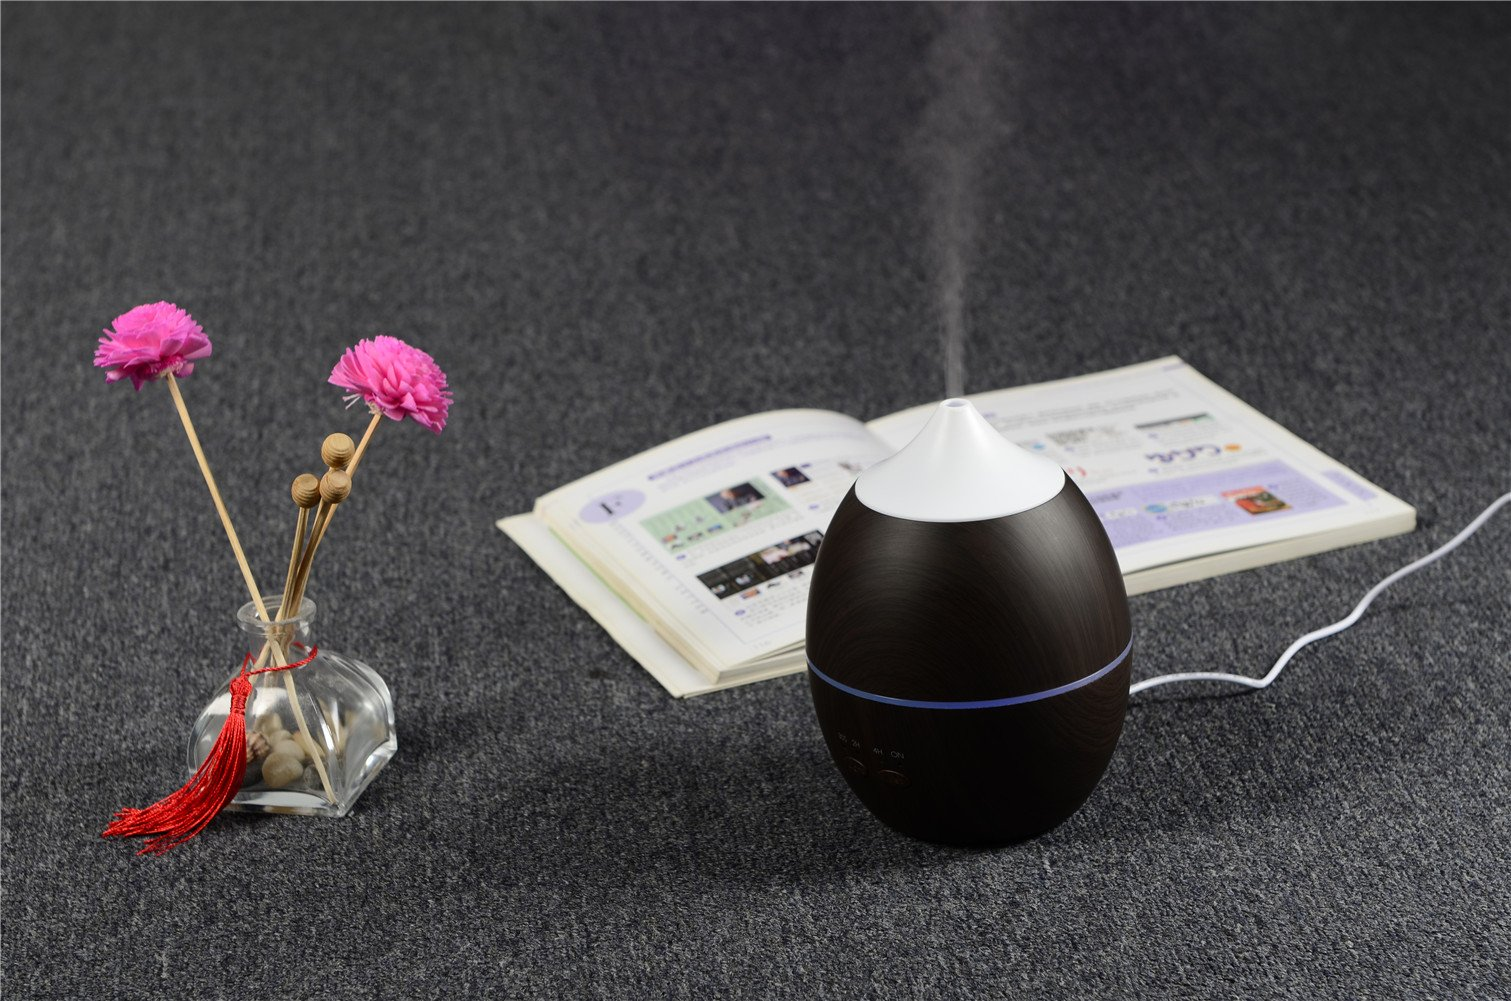 Deerbird 300ML Natural Deep Wood Grain Essential Oil Diffuser Ultrasonic Aromatherapy Diffusers with 7 LED Colorful Lights and Waterless Auto Shut-off by DeerBird (Image #8)